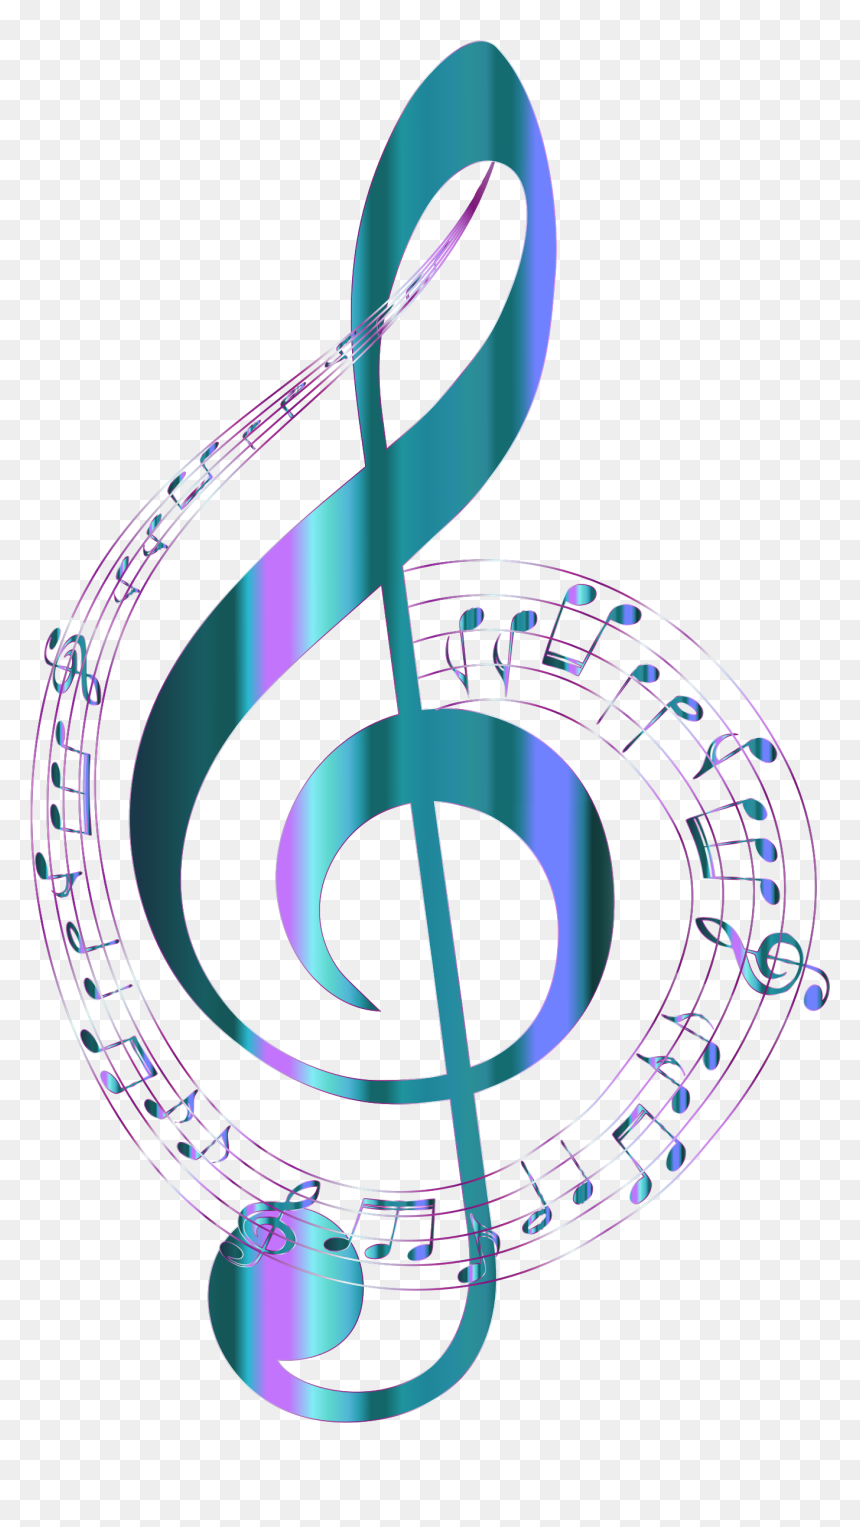 Transparent Background Music Note Png, Png Download